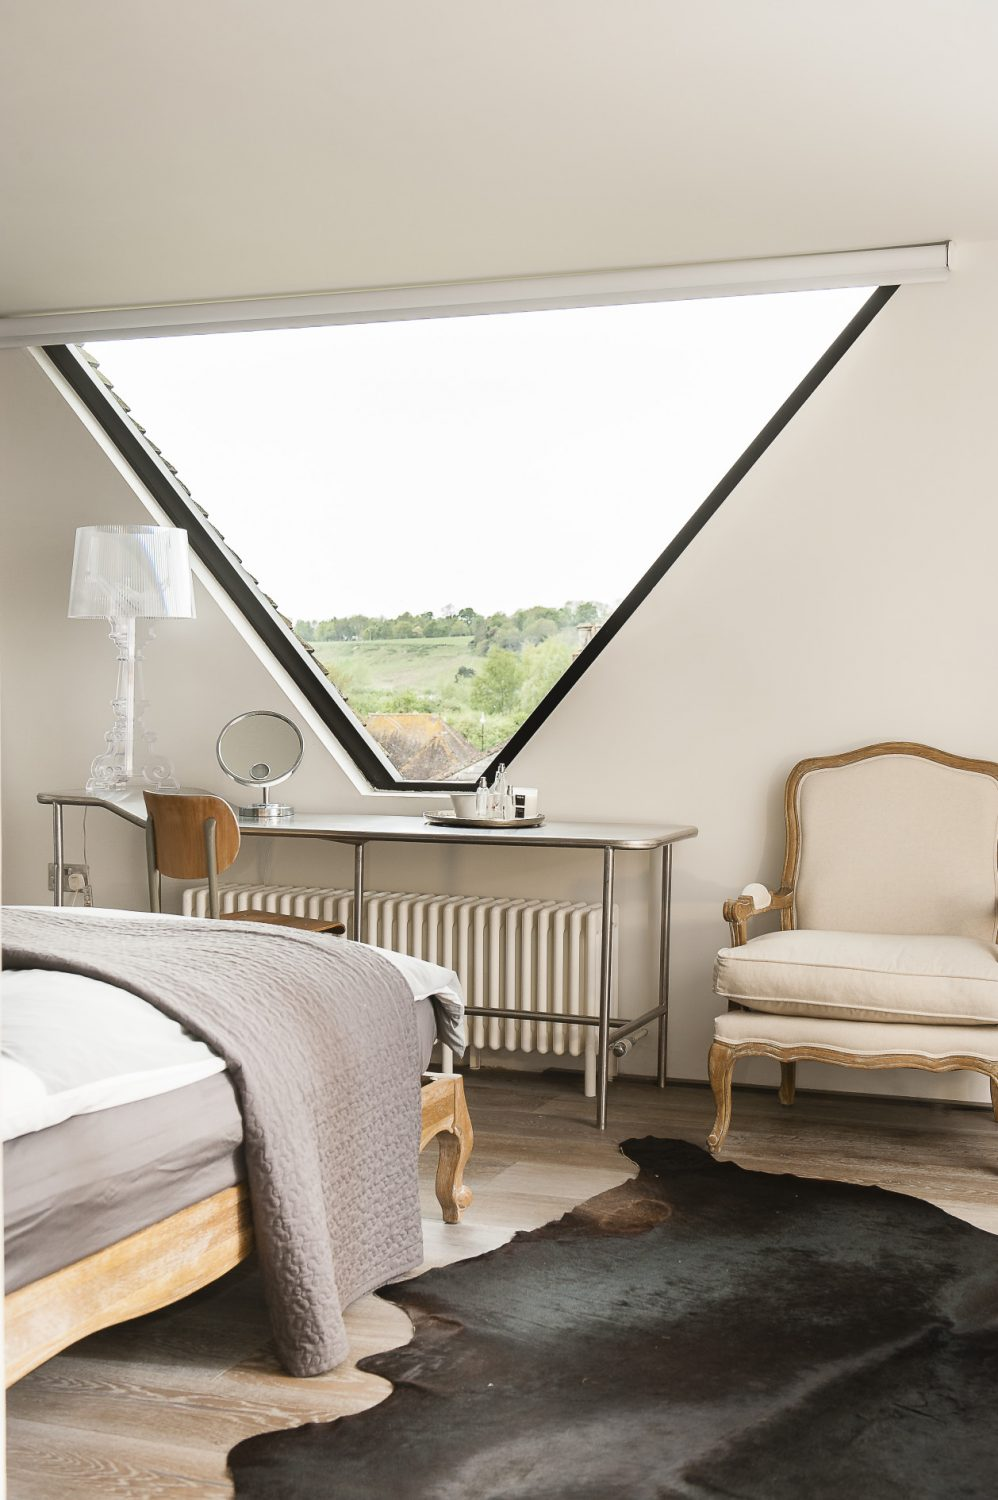 The master bedroom features an amazing triangular window that spans between the twin gables of the roof from which there are wonderful views of the surrounding buildings and the countryside beyond